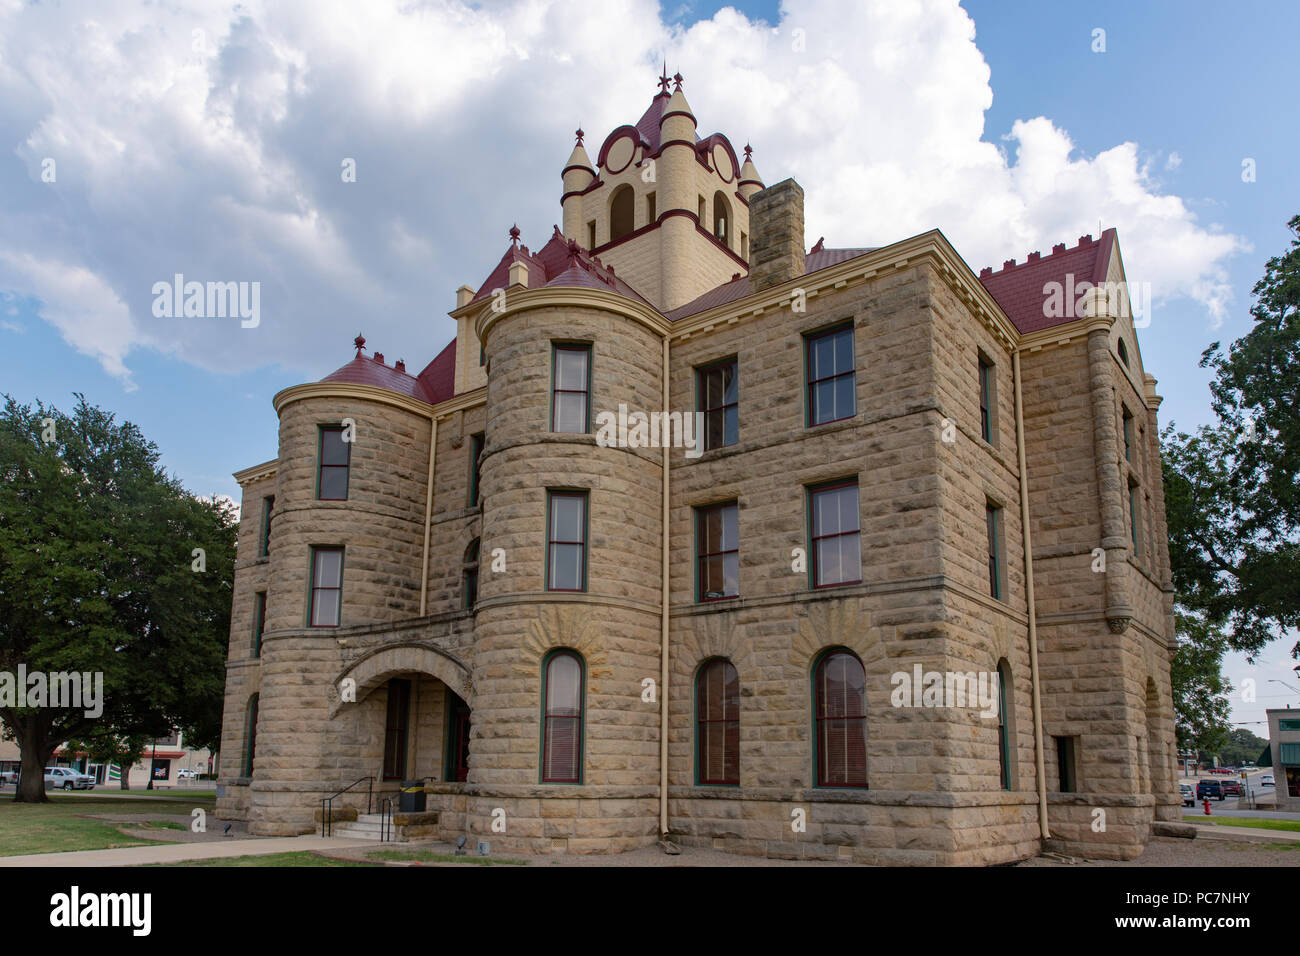 The historic 1900 McCulloch county courthouse in Brady Texas built in Romanesque Revival Style Stock Photo